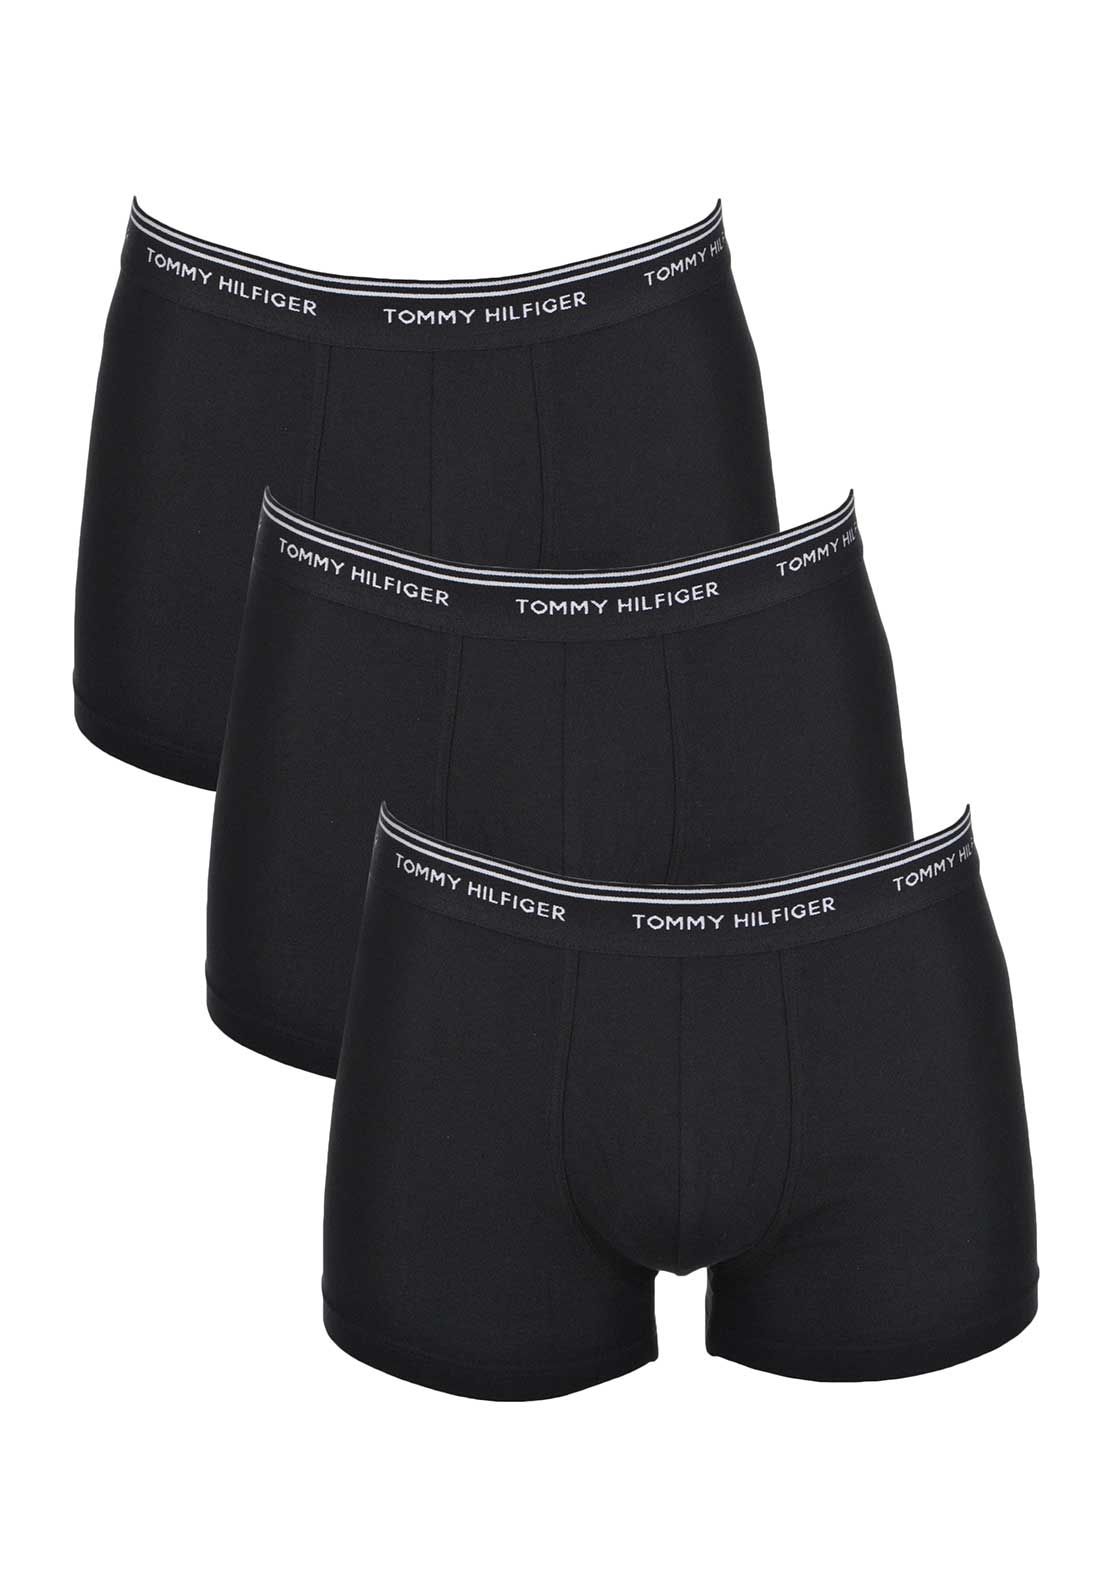 Tommy Hilfiger Mens Classic Stretch 3 Pack Boxer Short Trunks, Black